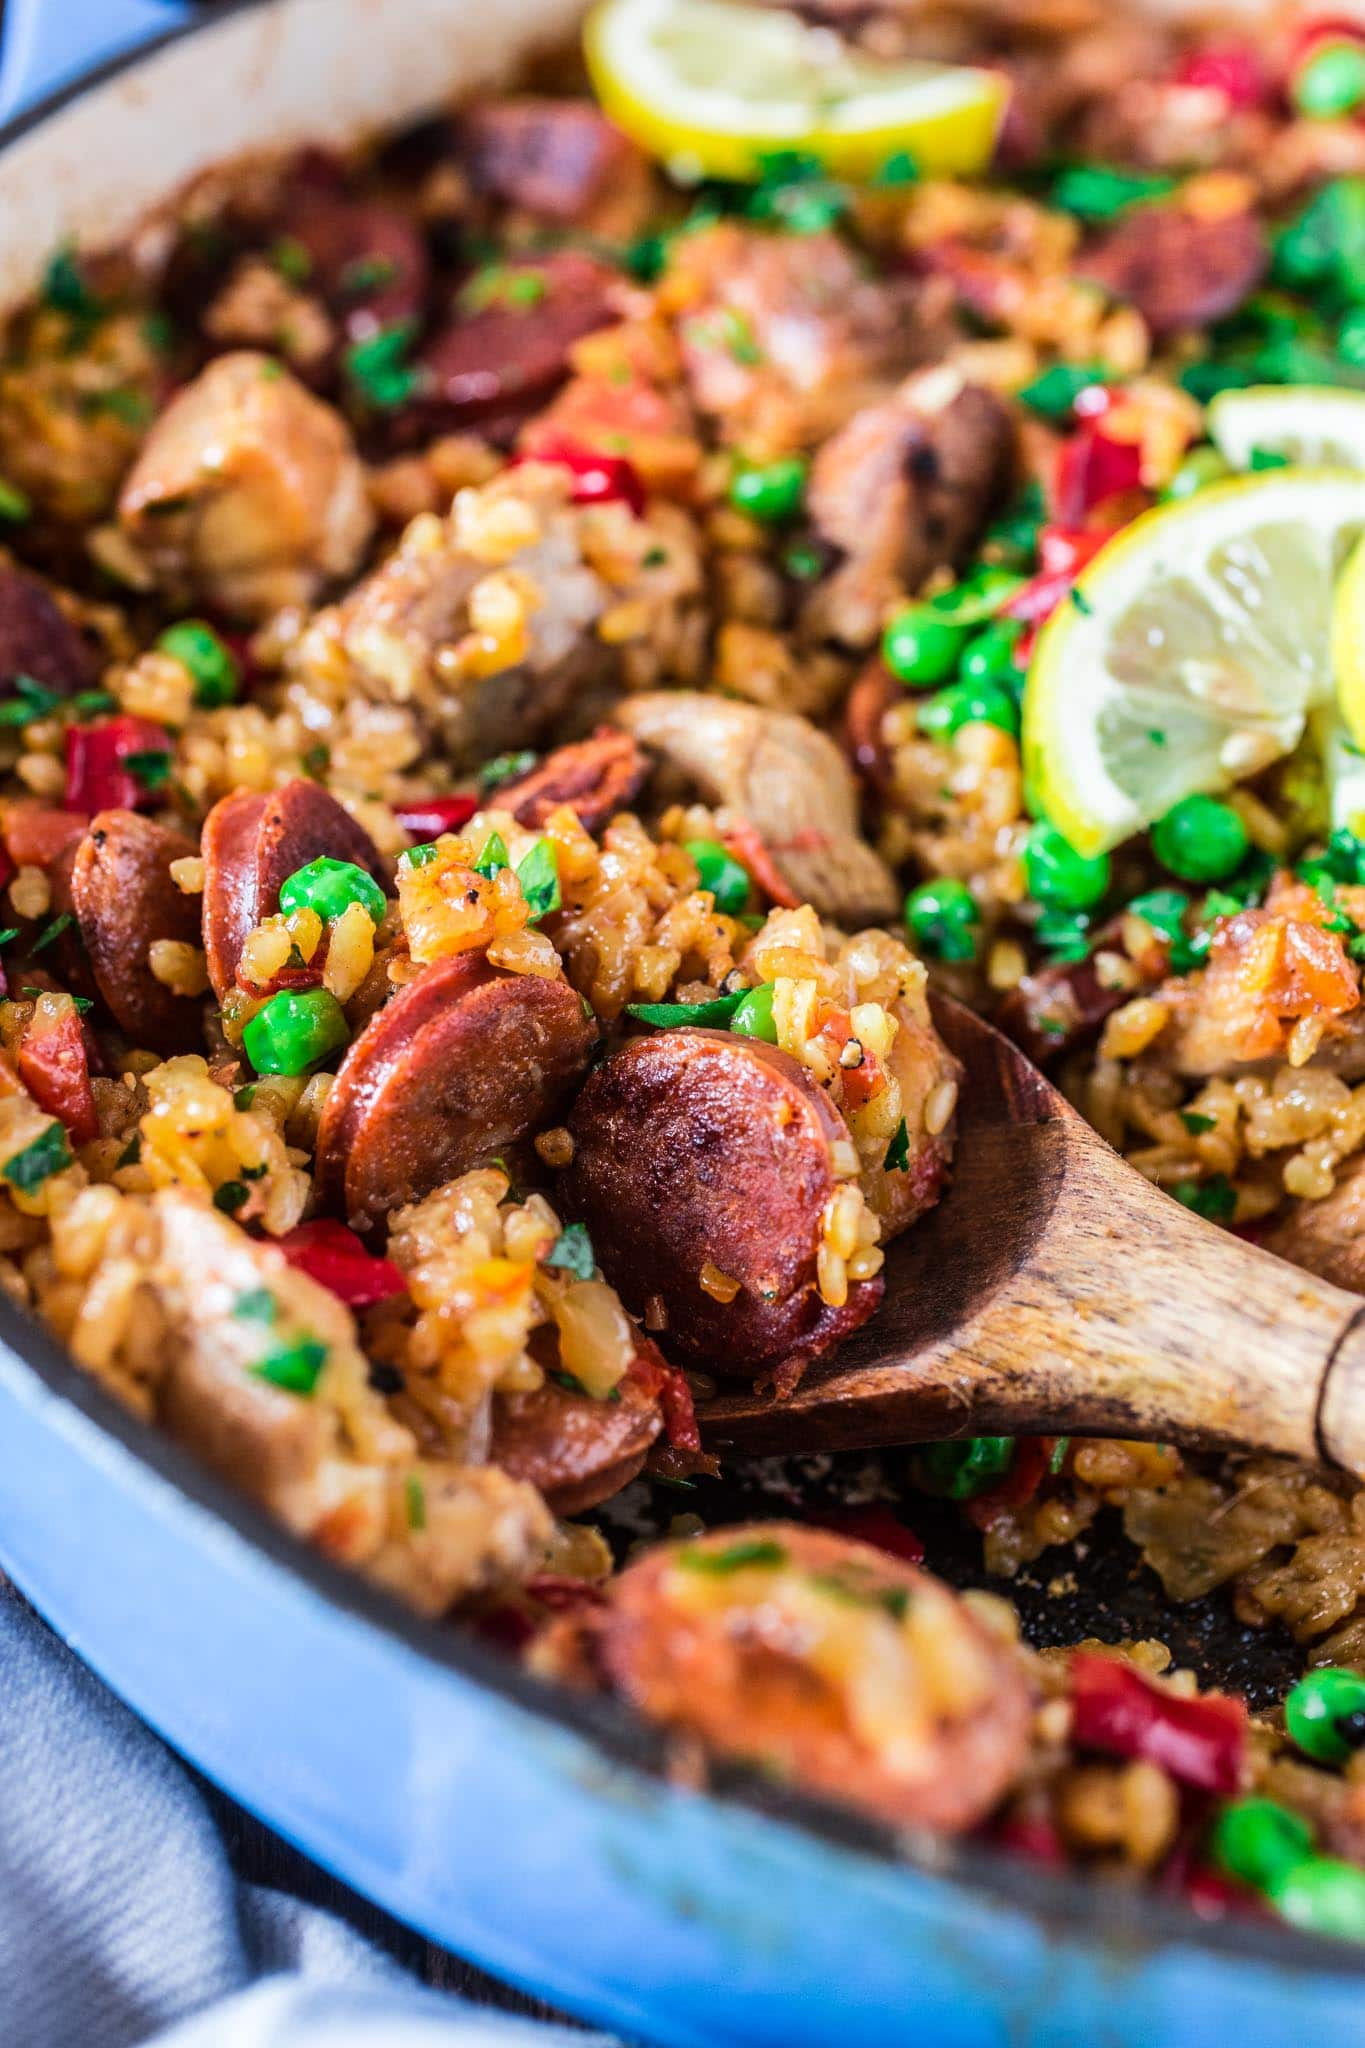 Chicken and Chorizo Paella | www.oliviascuisine.com | A Chicken and Chorizo Paella might sound like a very ambitious project, but once you realize how easy and quick it is, you will be making it over and over again. Pair it with a bottle of Garnacha Wine and you're all set for success!